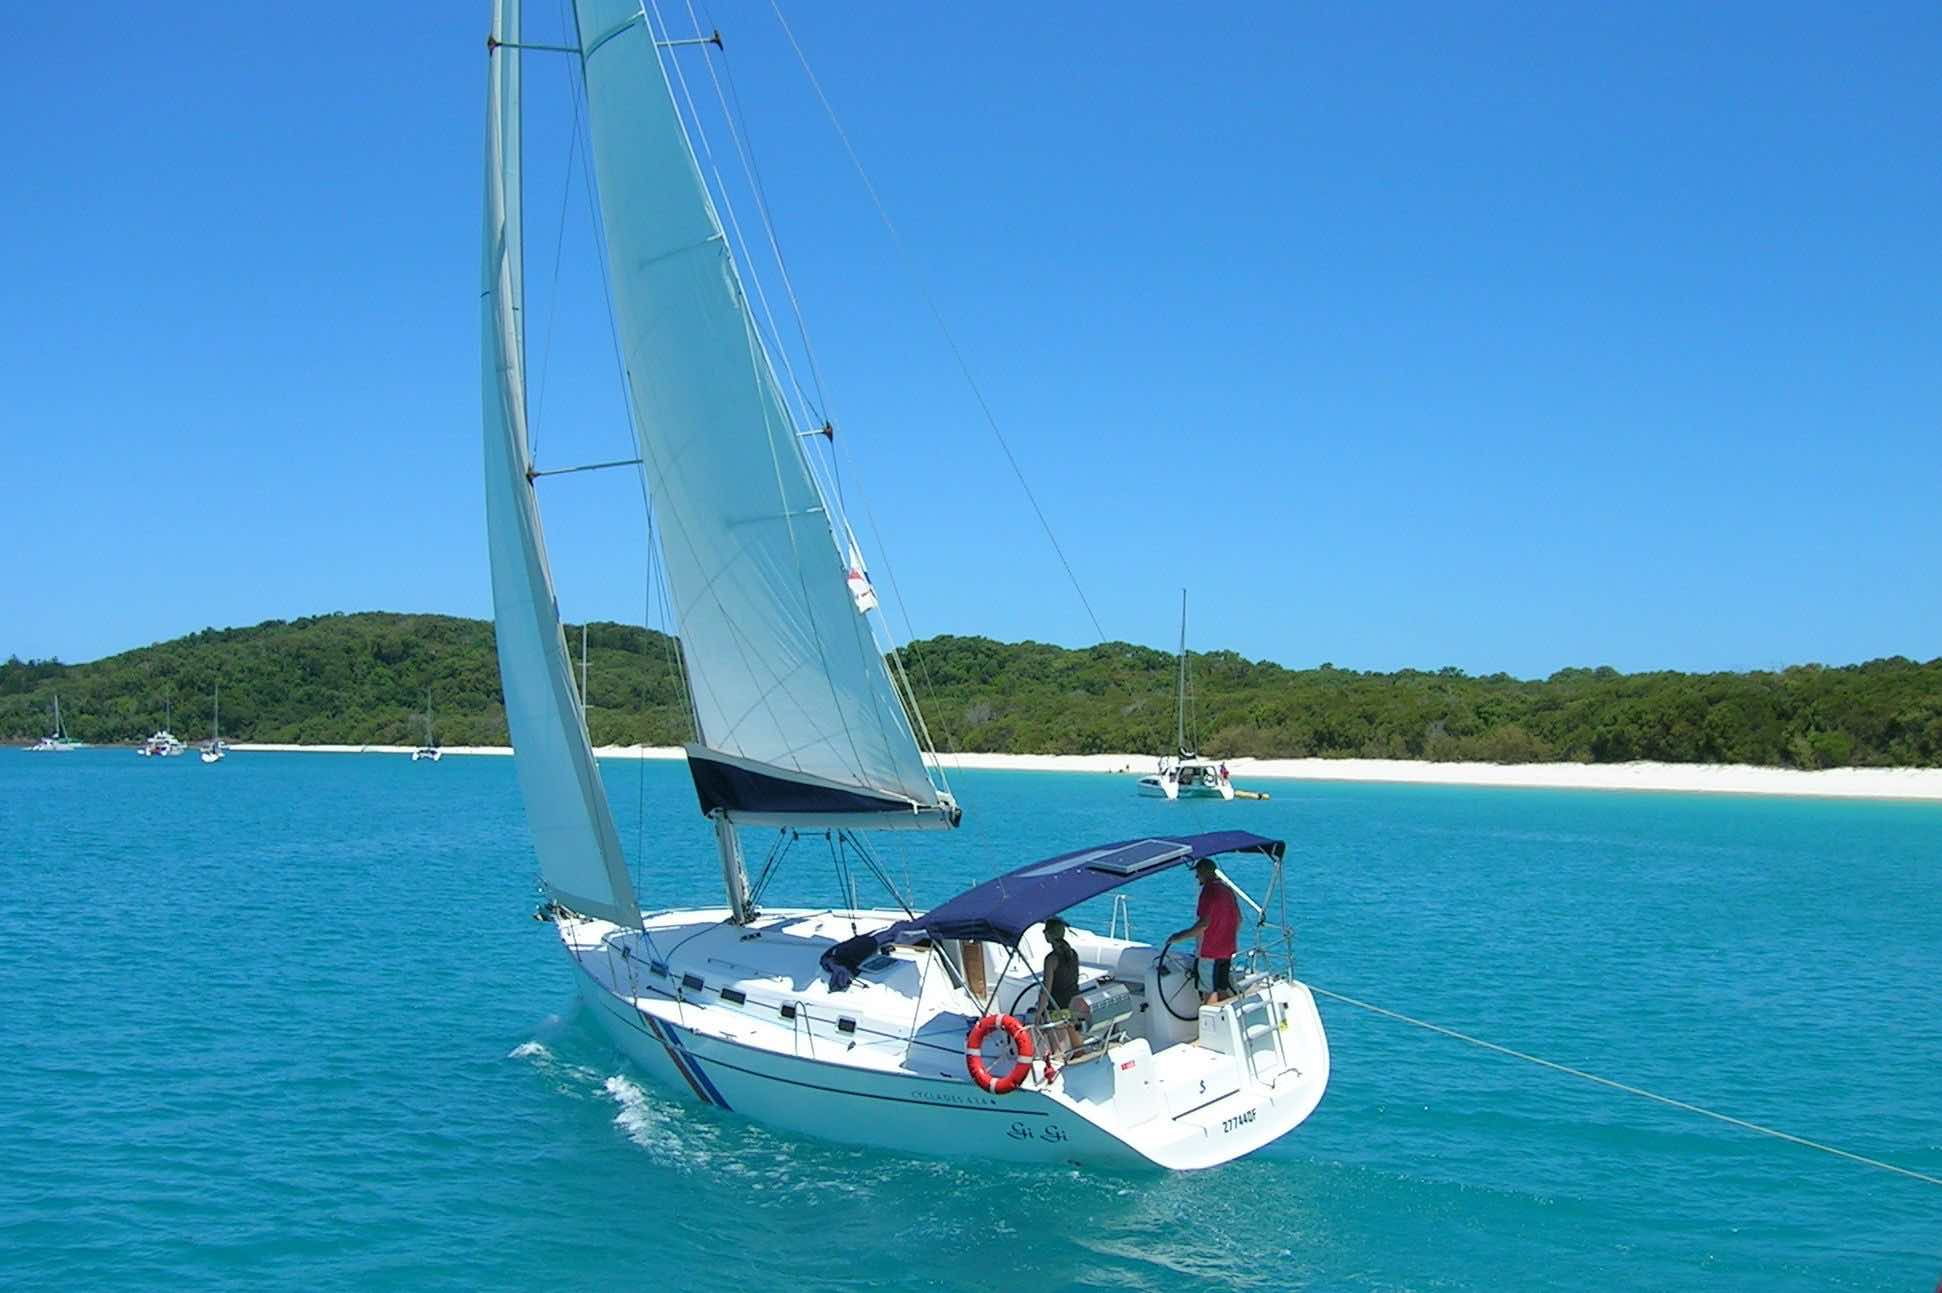 Sailing weather in the whitsundays